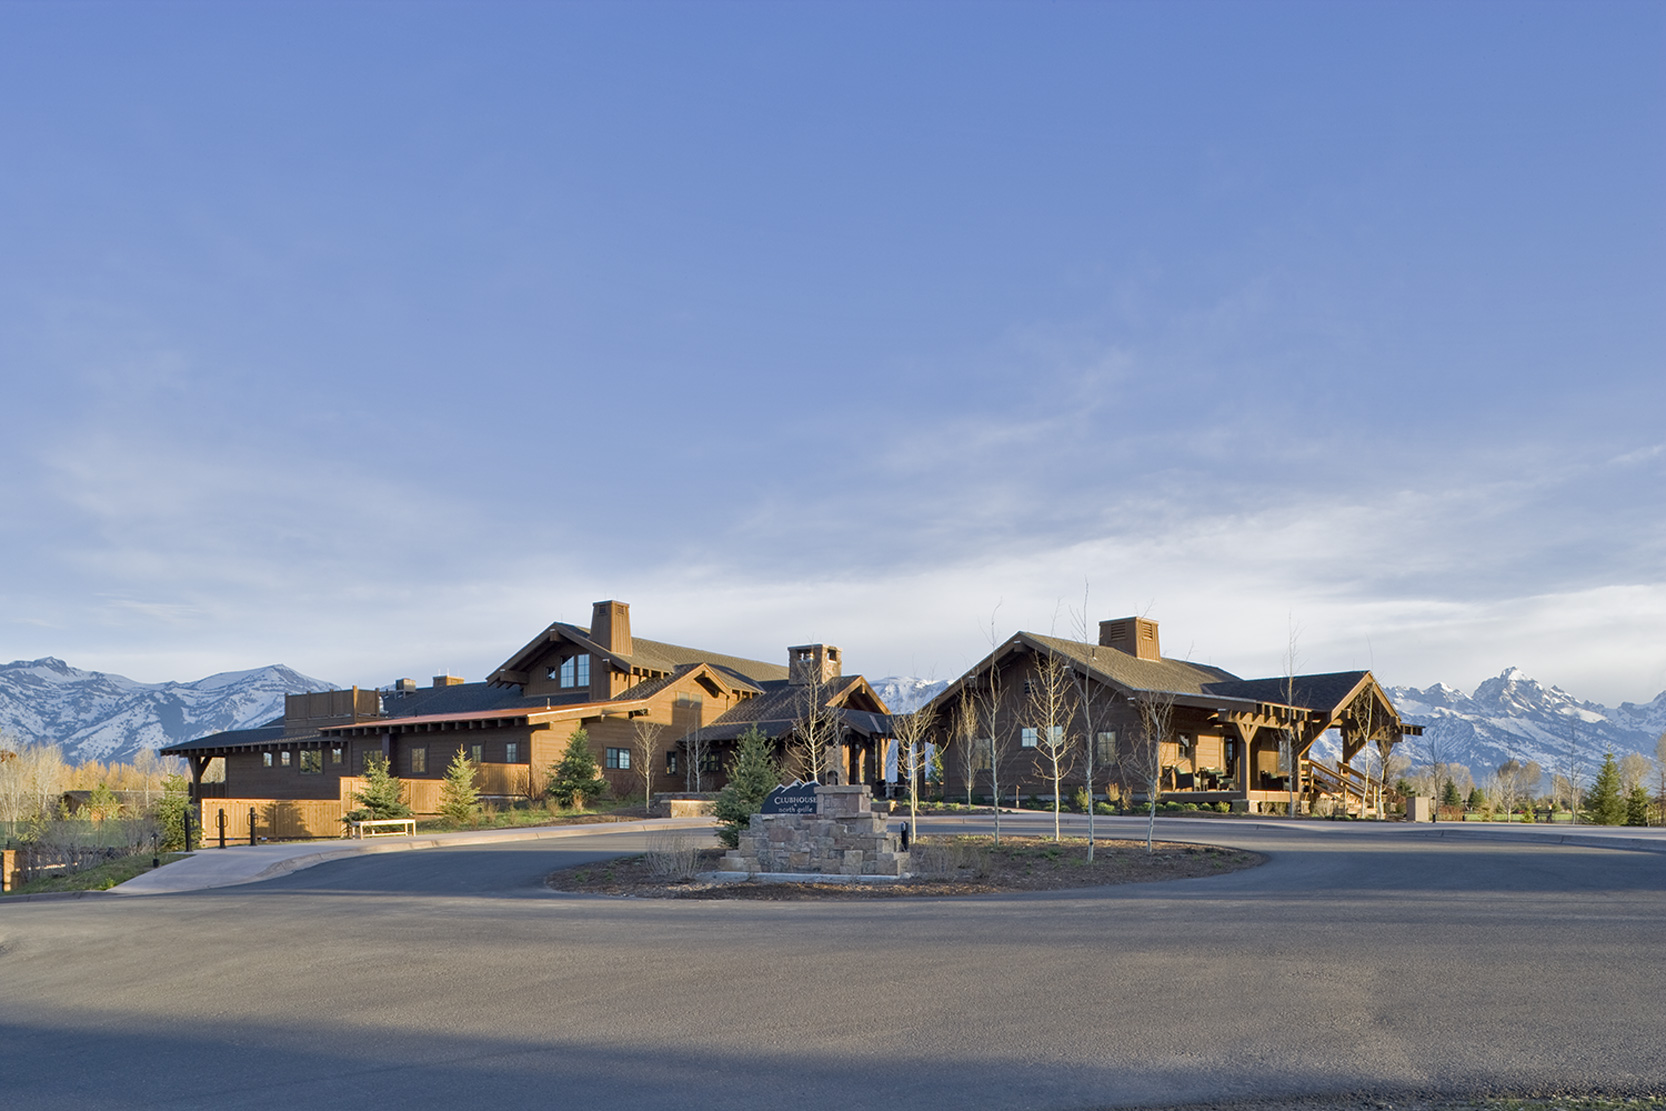 Jackson Hole Golf & Tennis Club, Jackson Hole, Wyoming